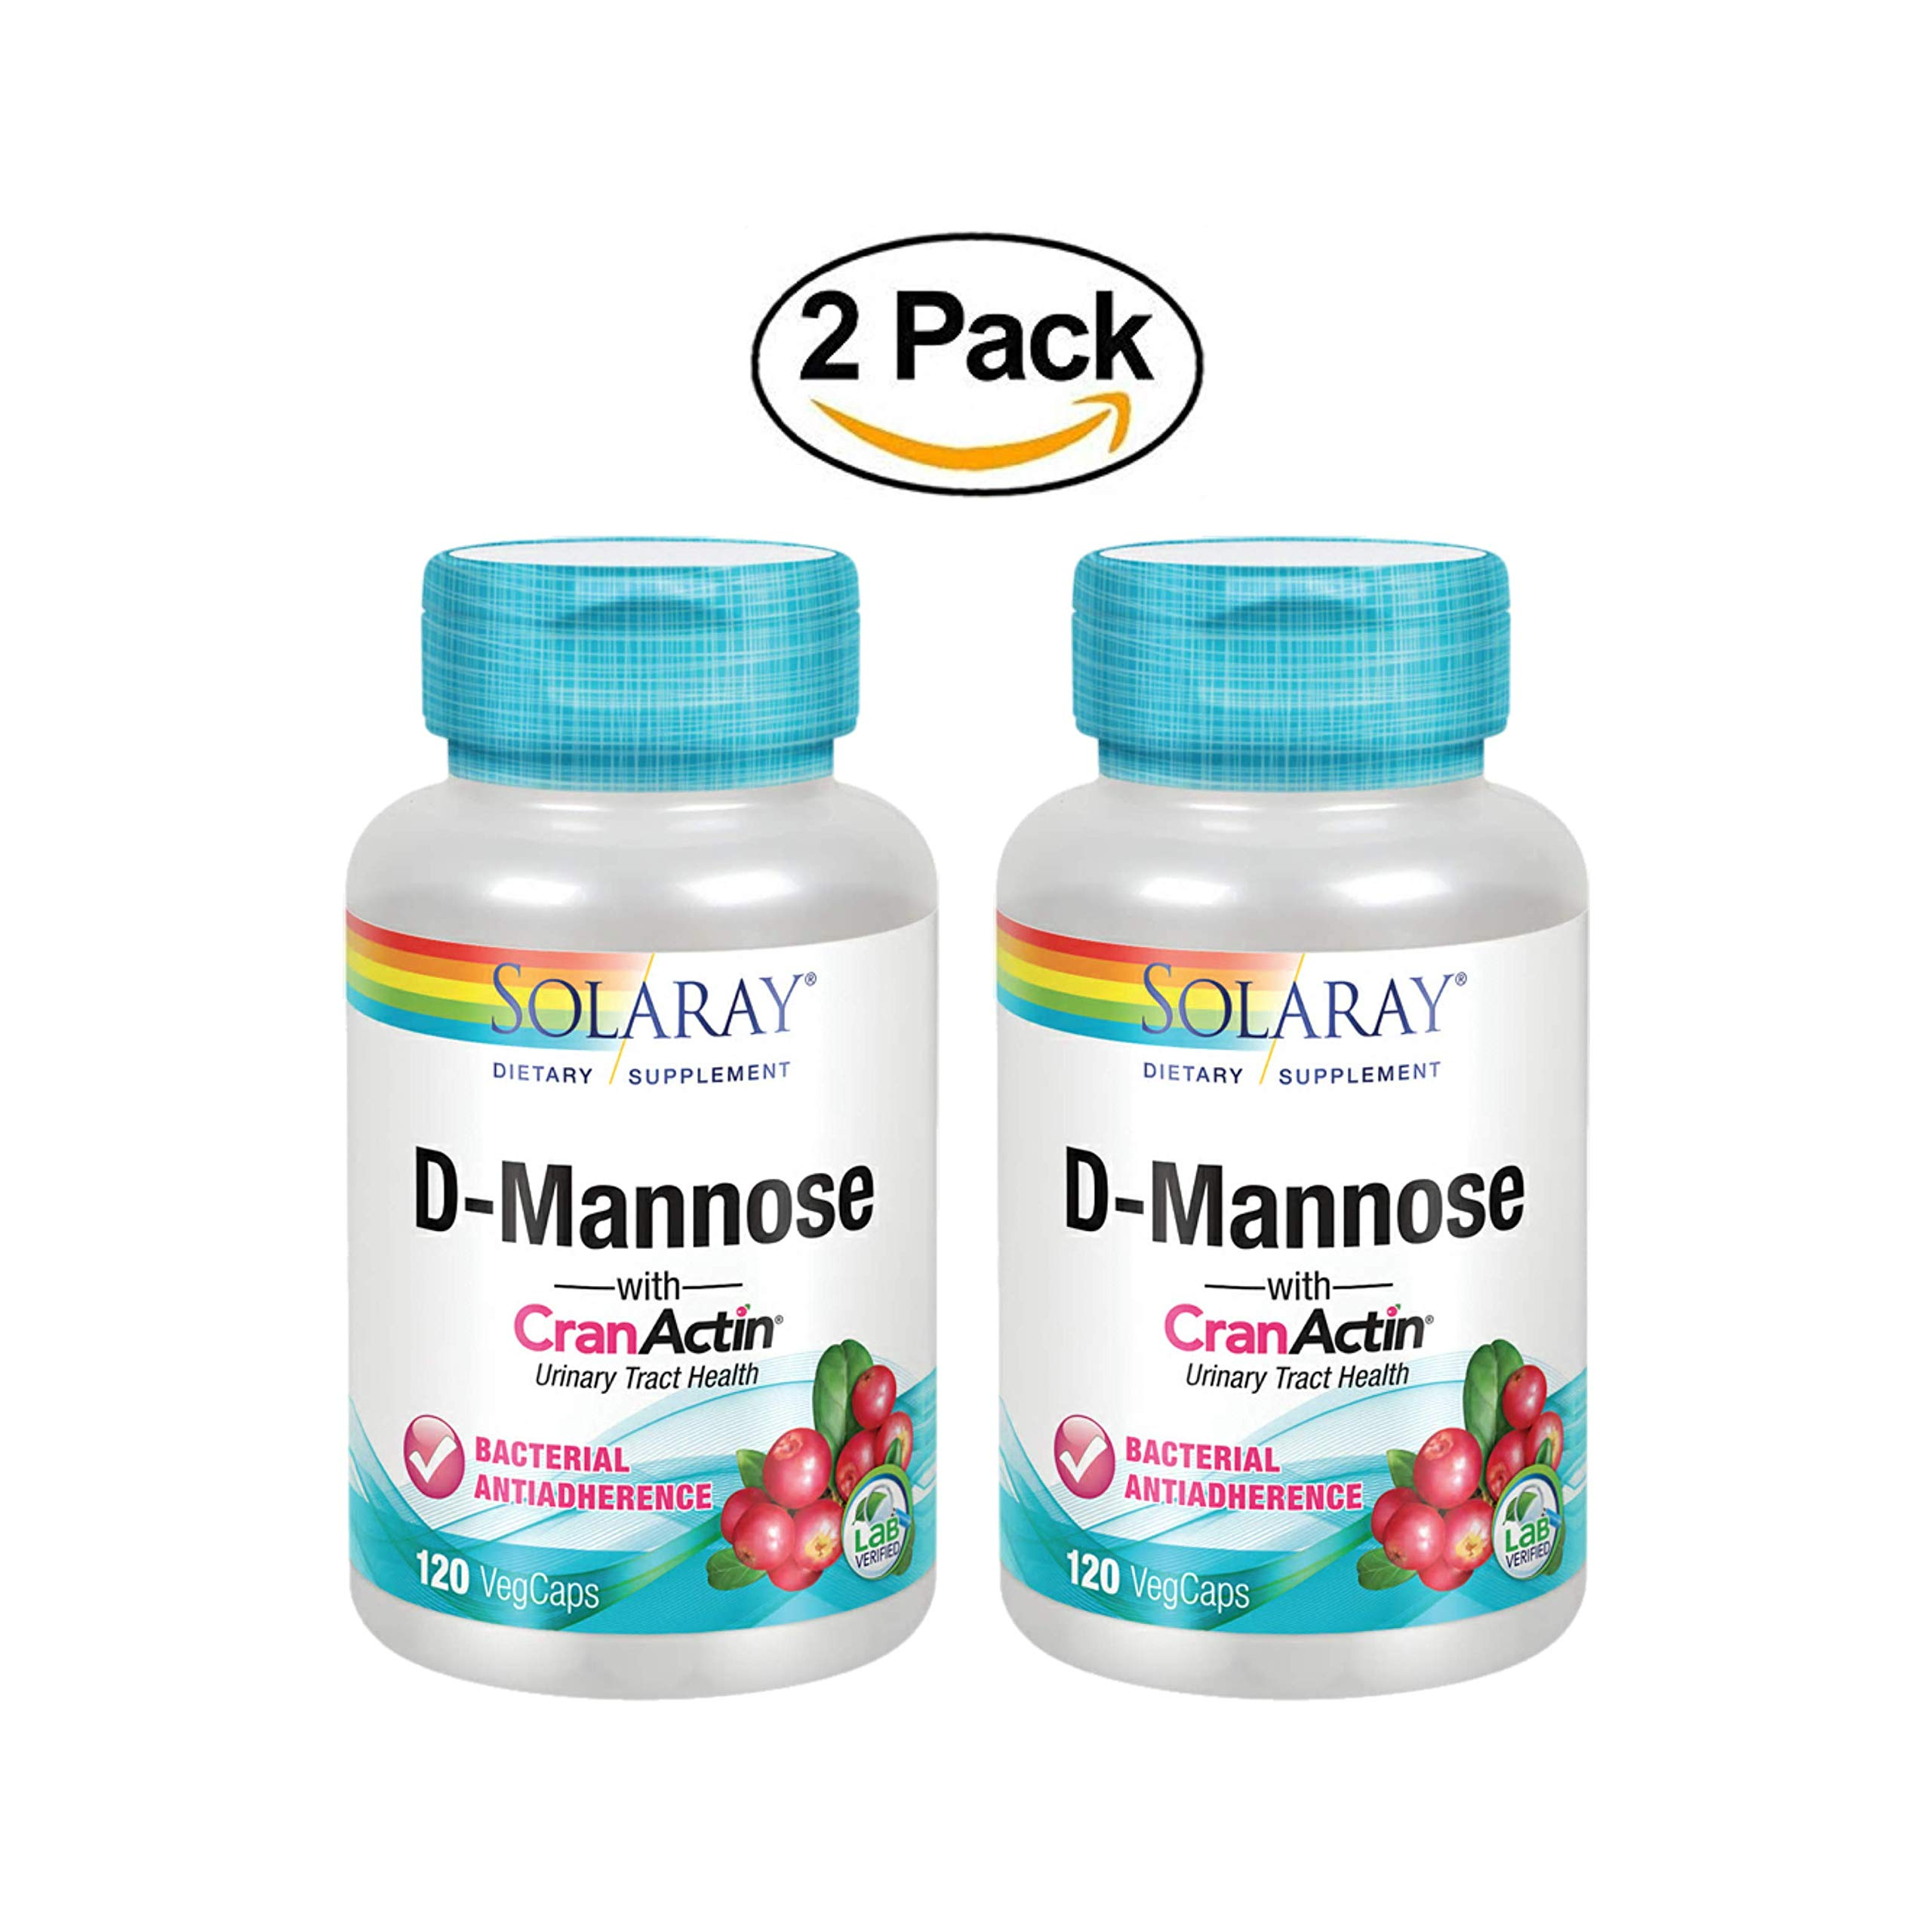 Solaray® D-Mannose with CranActin Cranberry Extract 1000mg | for Normal, Healthy Urinary Tract Support | with Vitamin C | Non-GMO & Vegan | 120 Count | 2 pk by Solaray (Image #1)